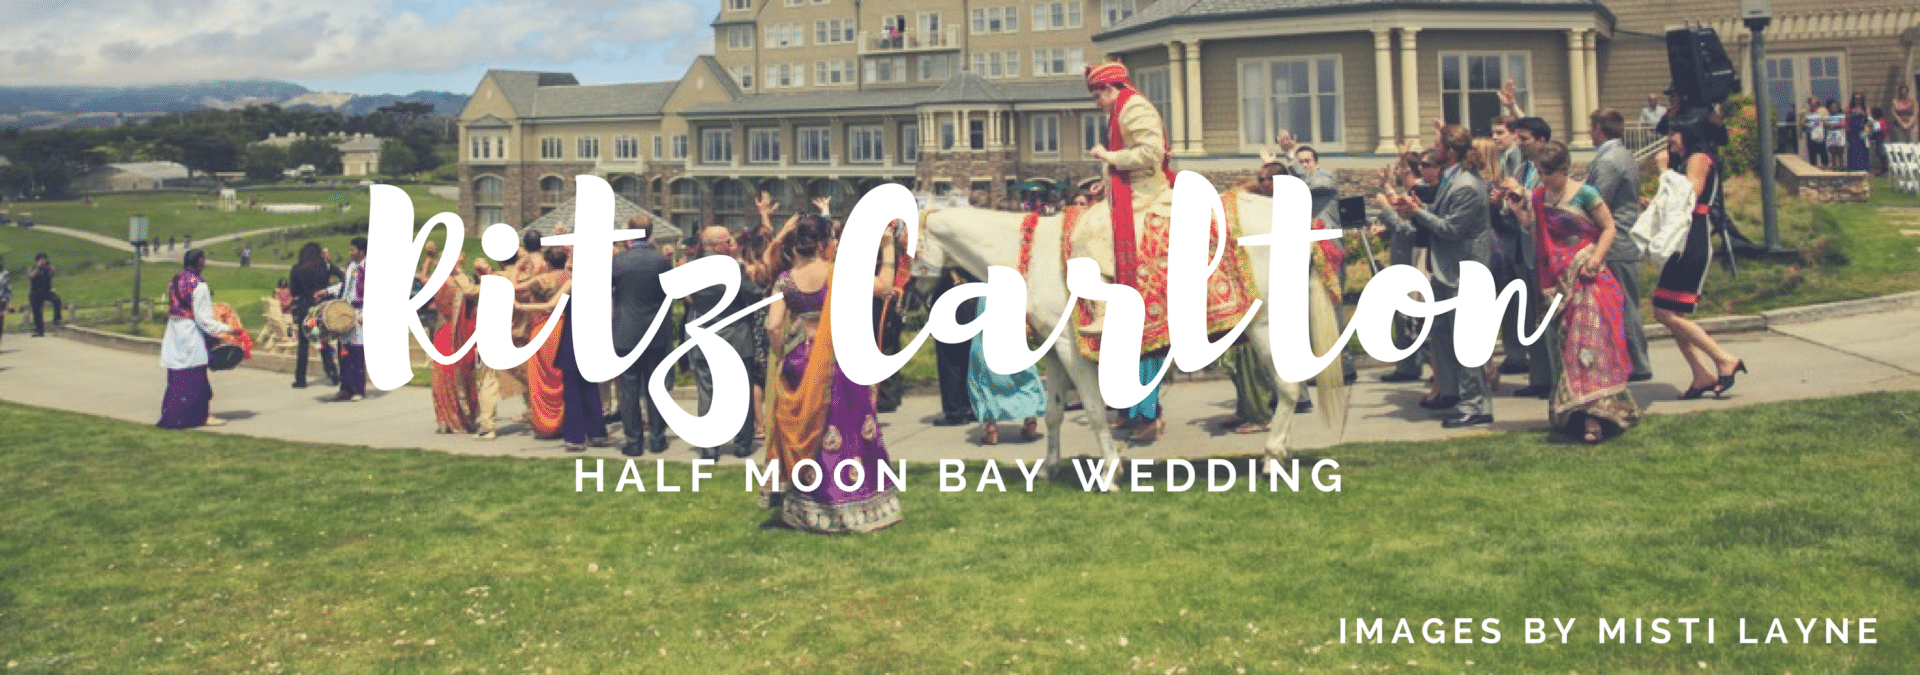 wedding at the ritz carlton half moon bay